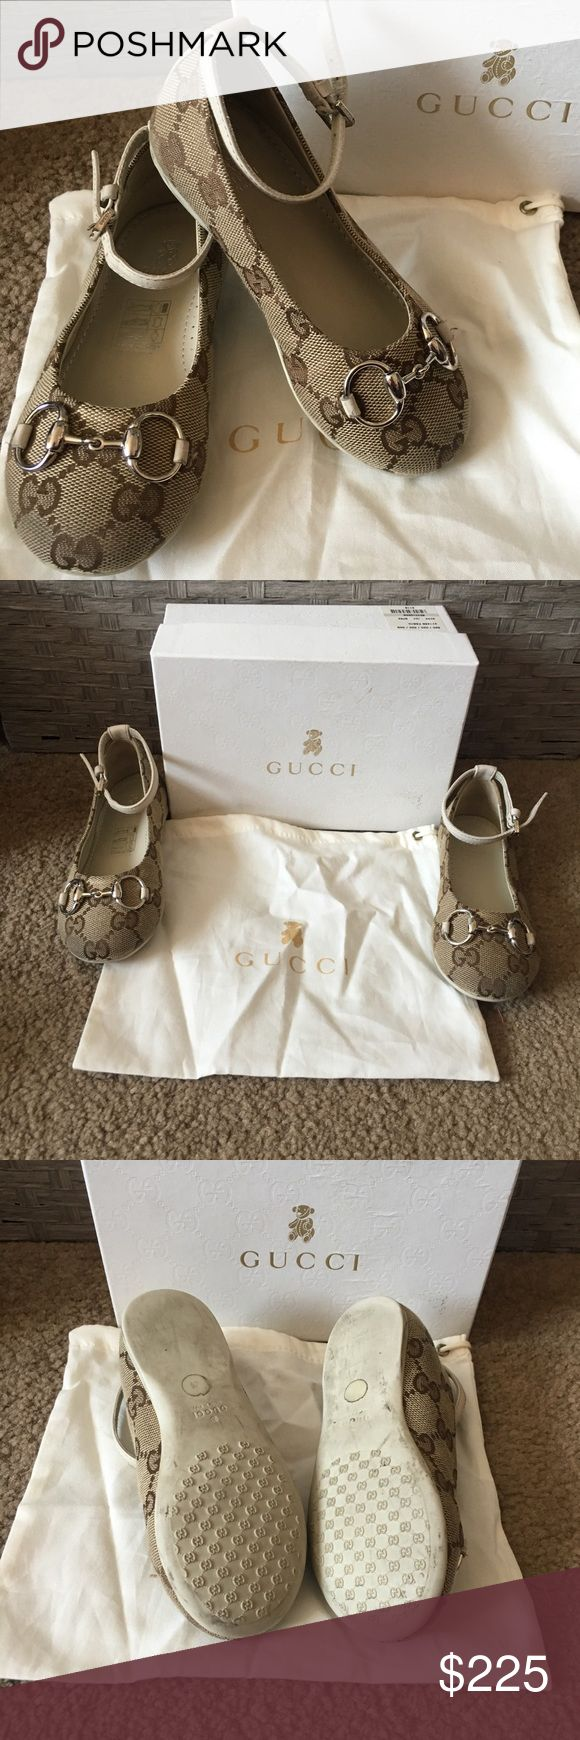 GUCCI *used* Girls Shoes Beautiful size 24 shoes used only 1 time!  Visible signs of wear all over, over all in great condition, please ask any & all questions, dust bag & box included. Gucci Shoes Dress Shoes